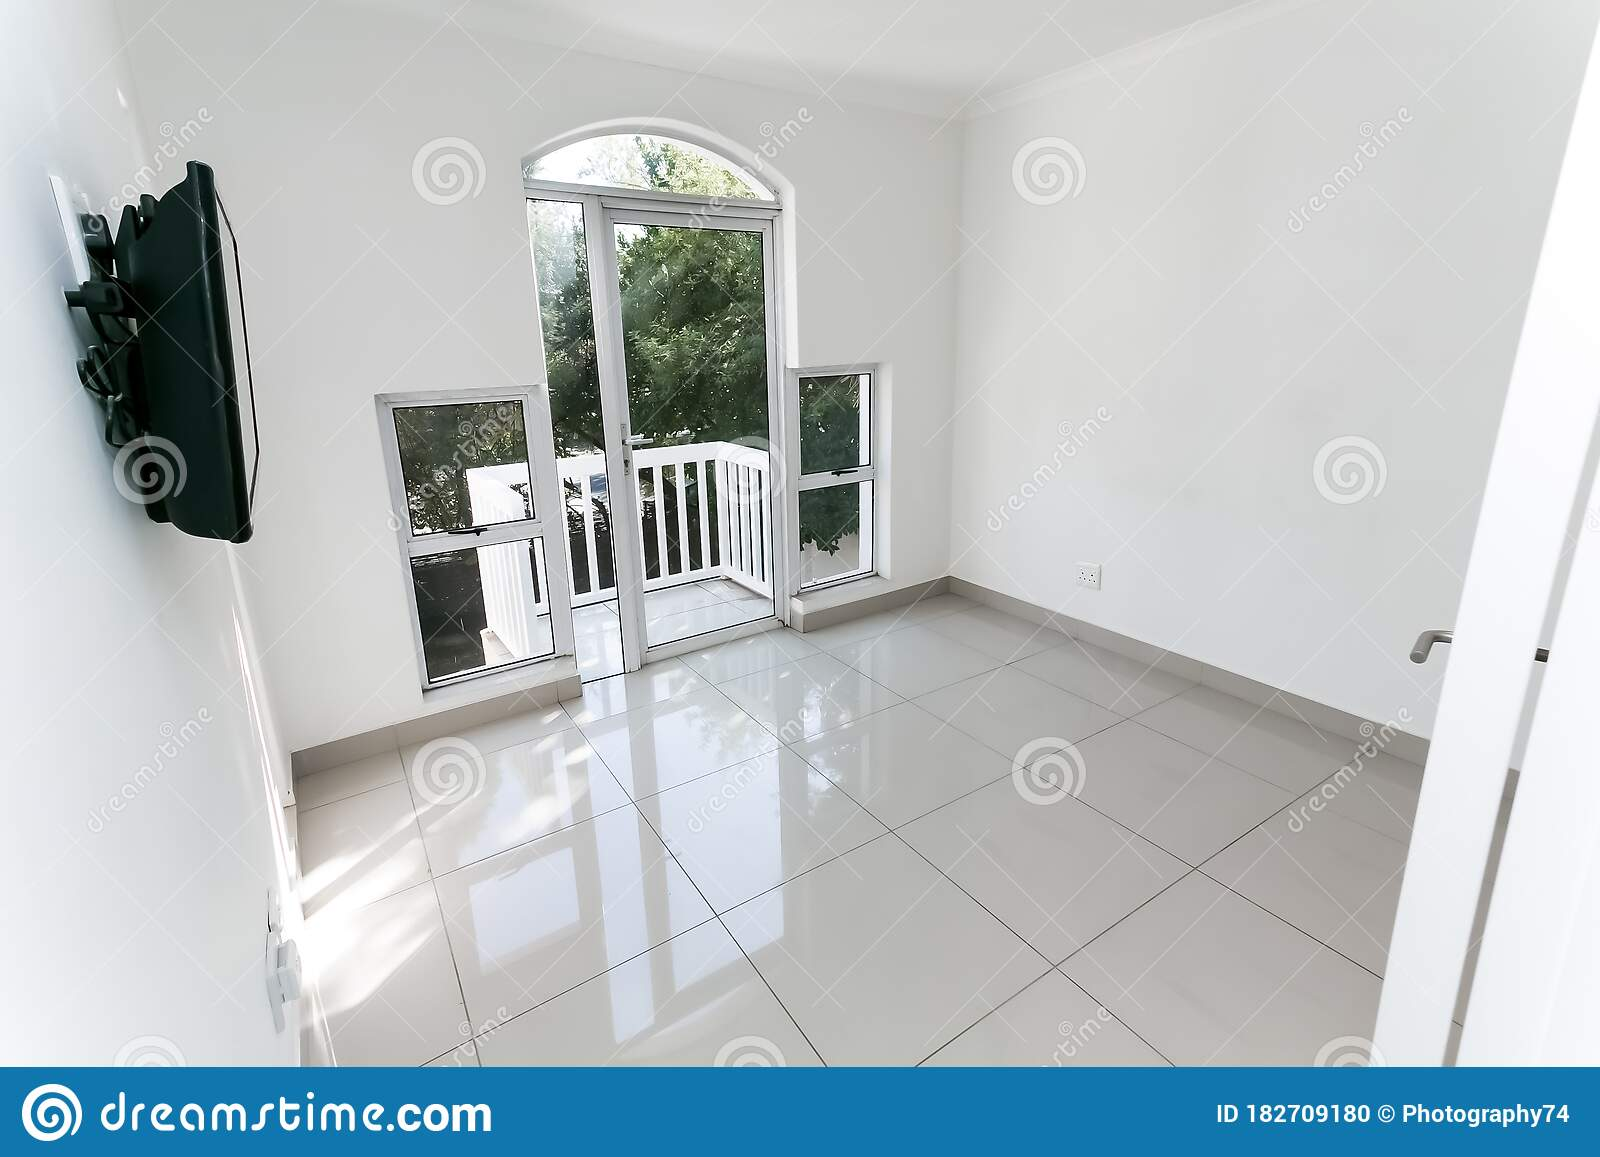 Inside Interior Of Empty Bedroom With Tiled Floors In Up-market